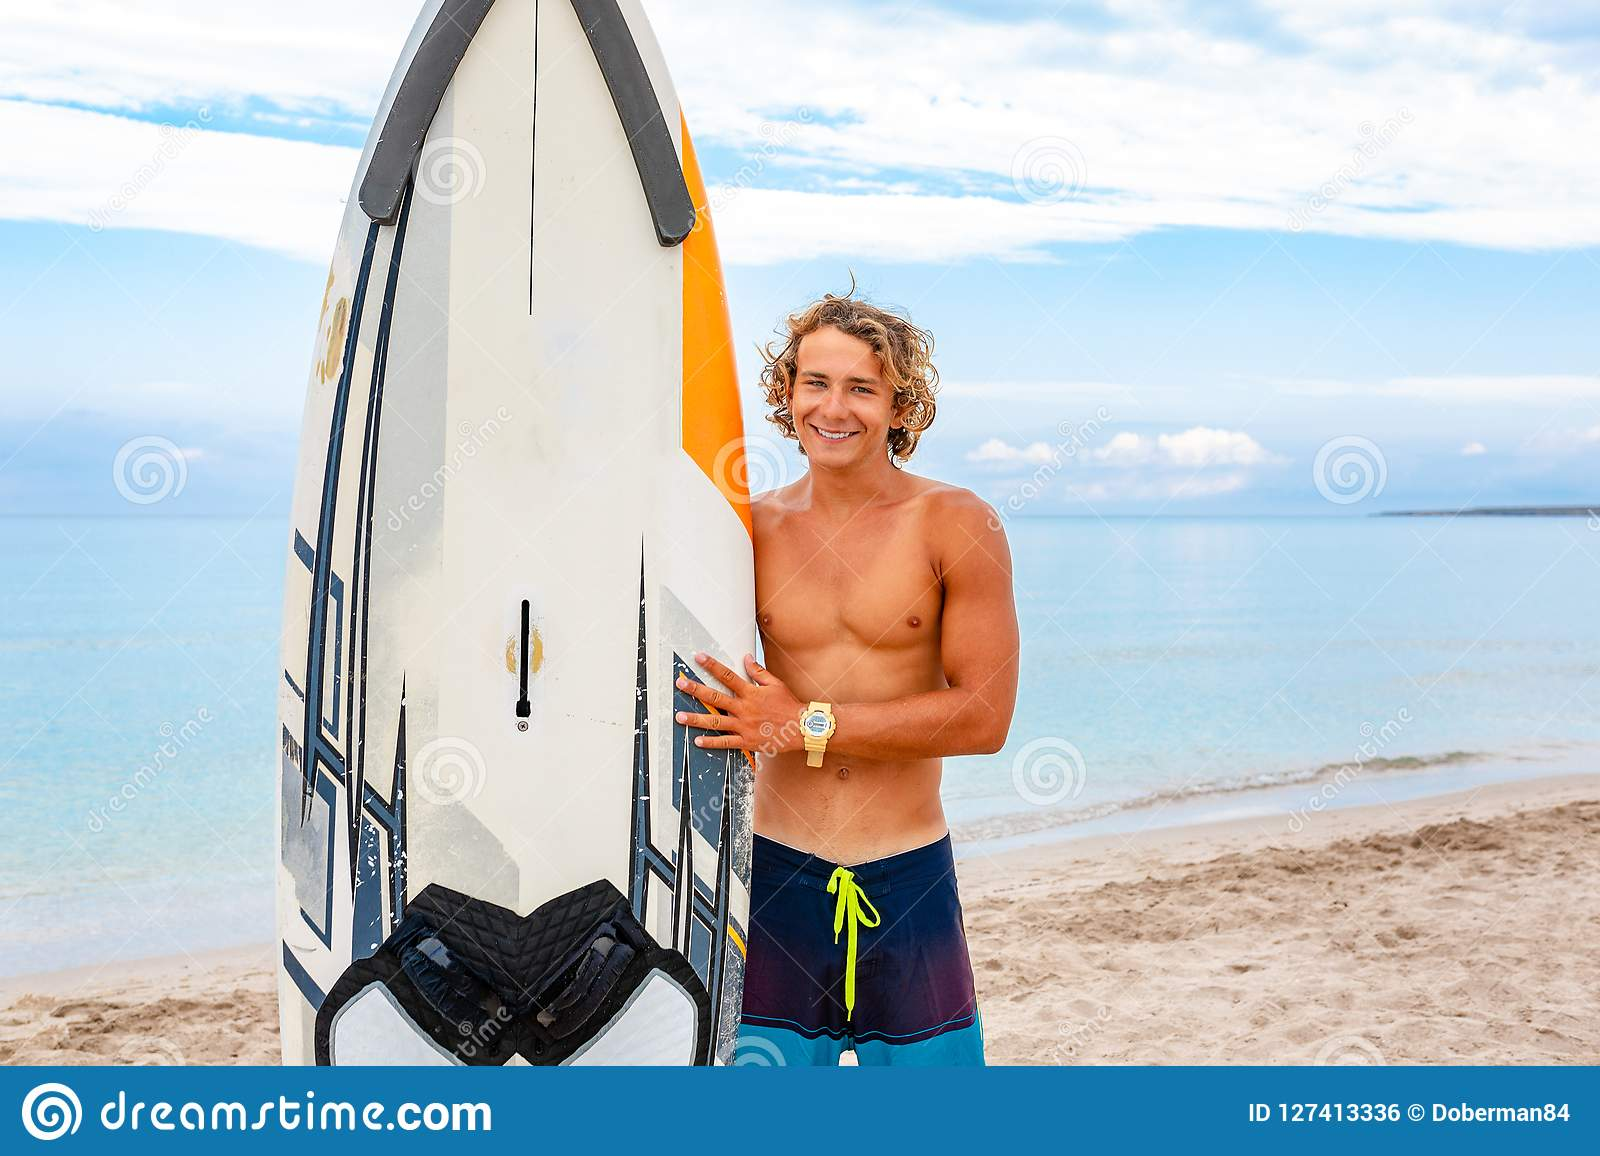 Handsome man walk with white blank surfing board wait for wave to surf spot at sea ocean shore. Concept of sport